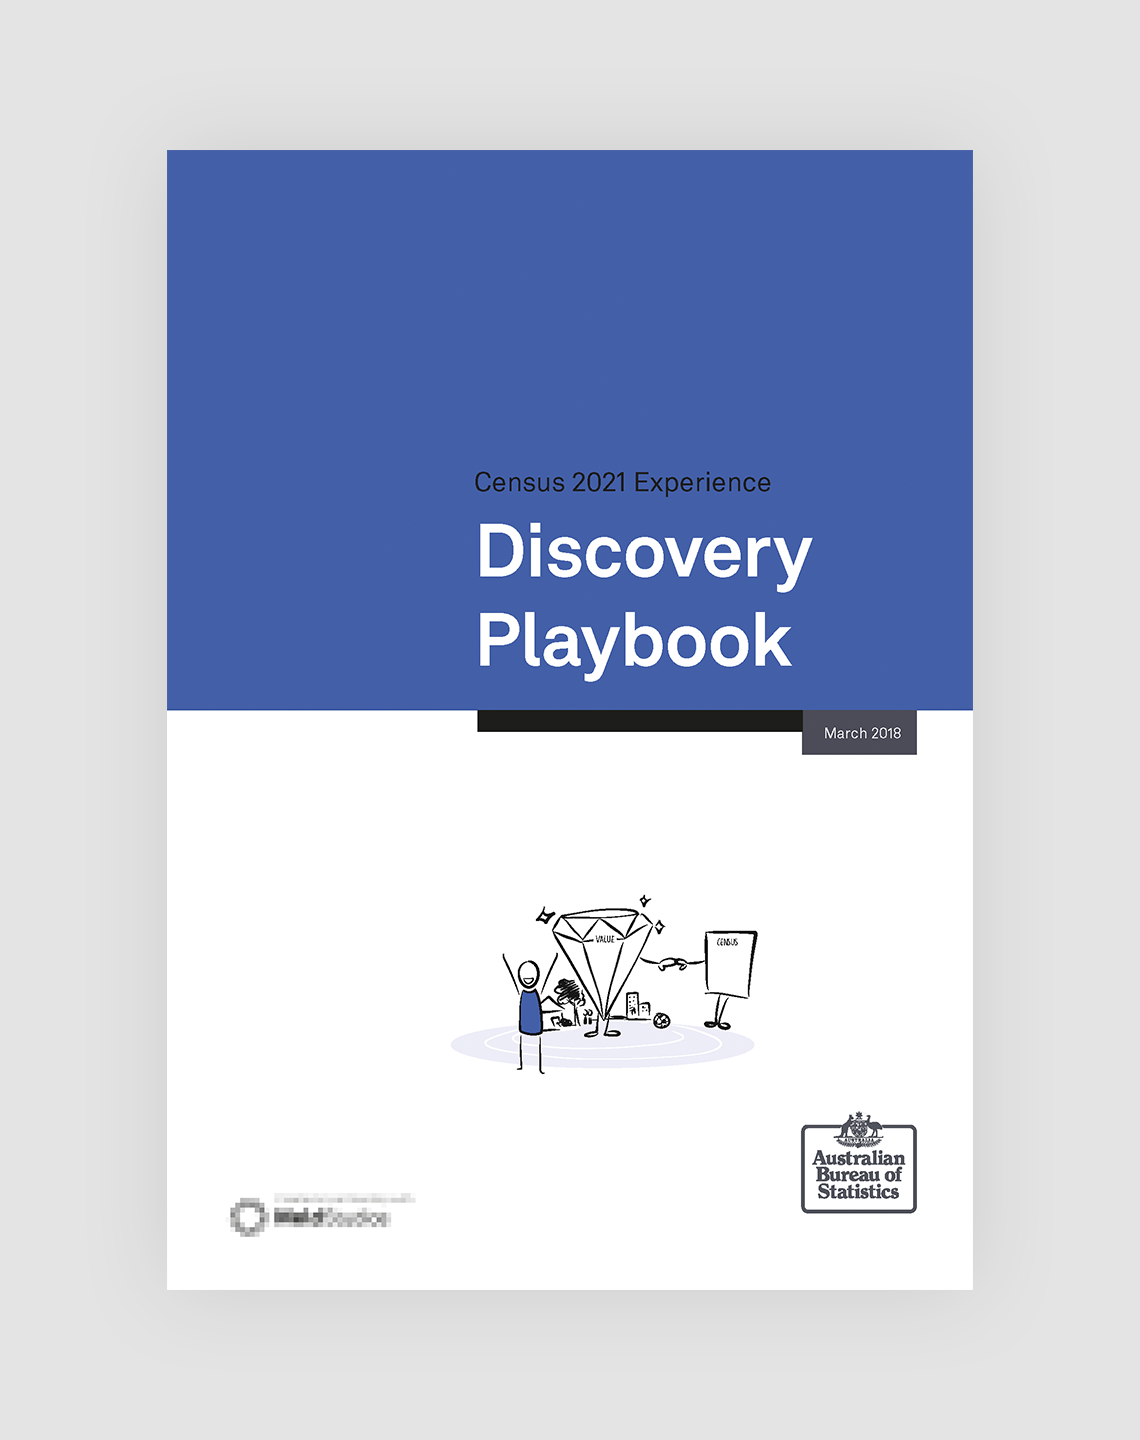 census-discovery-playbook